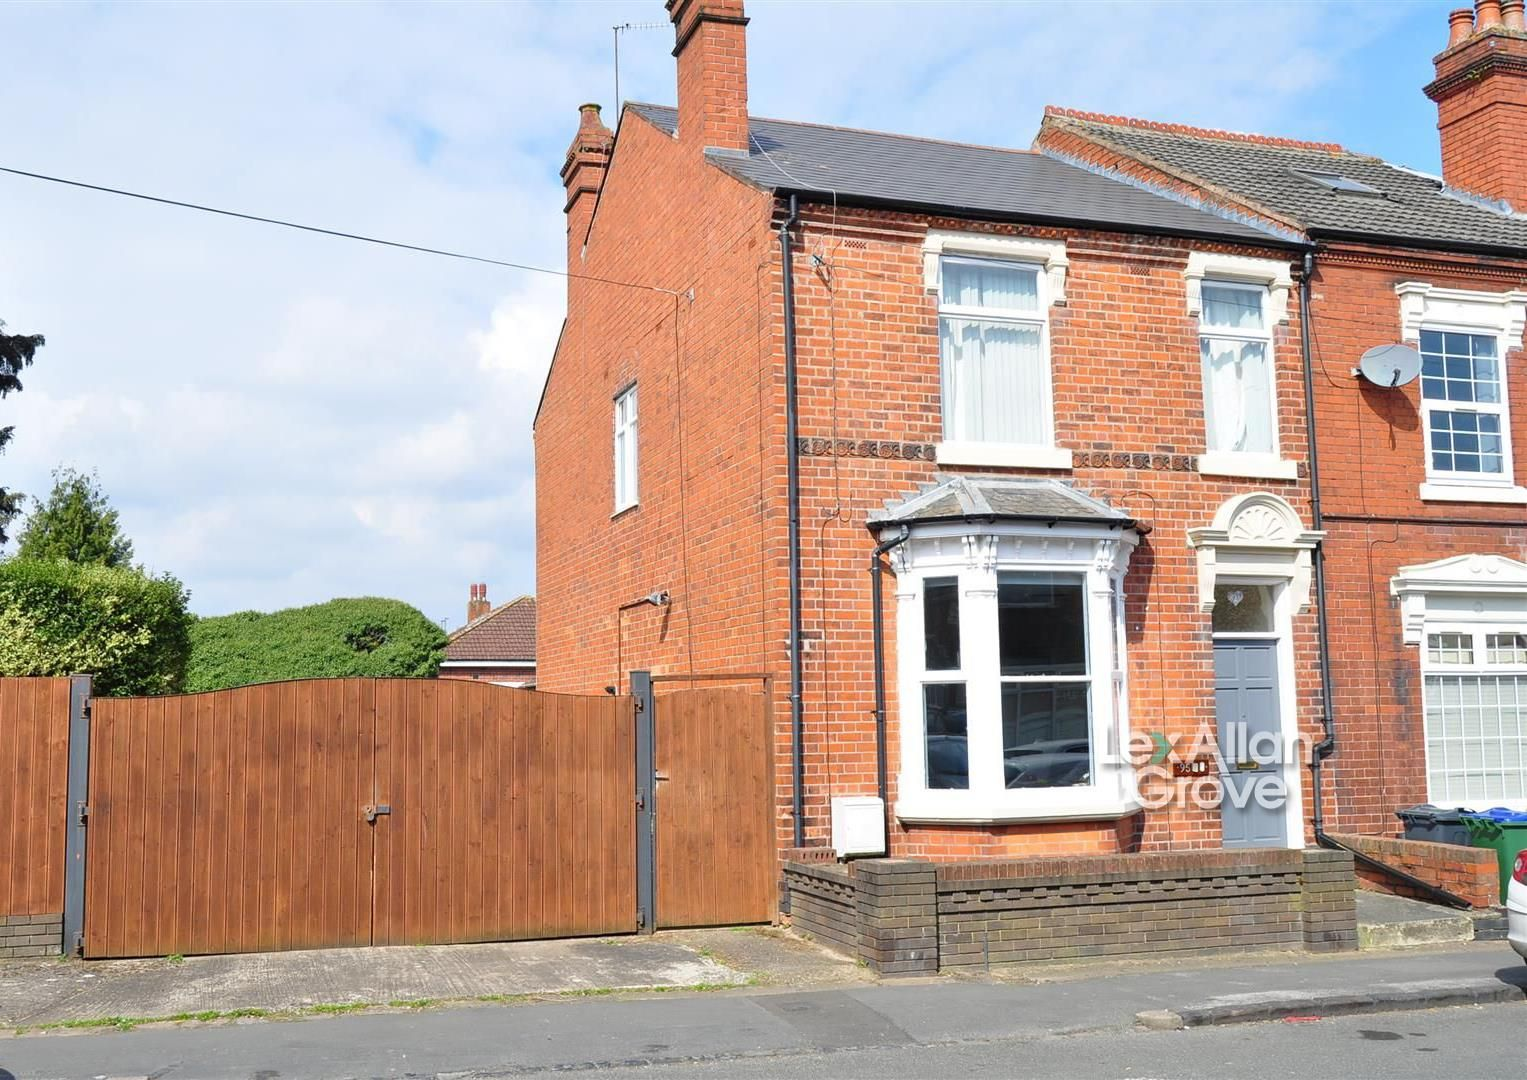 2 bed end-of-terrace for sale, B68